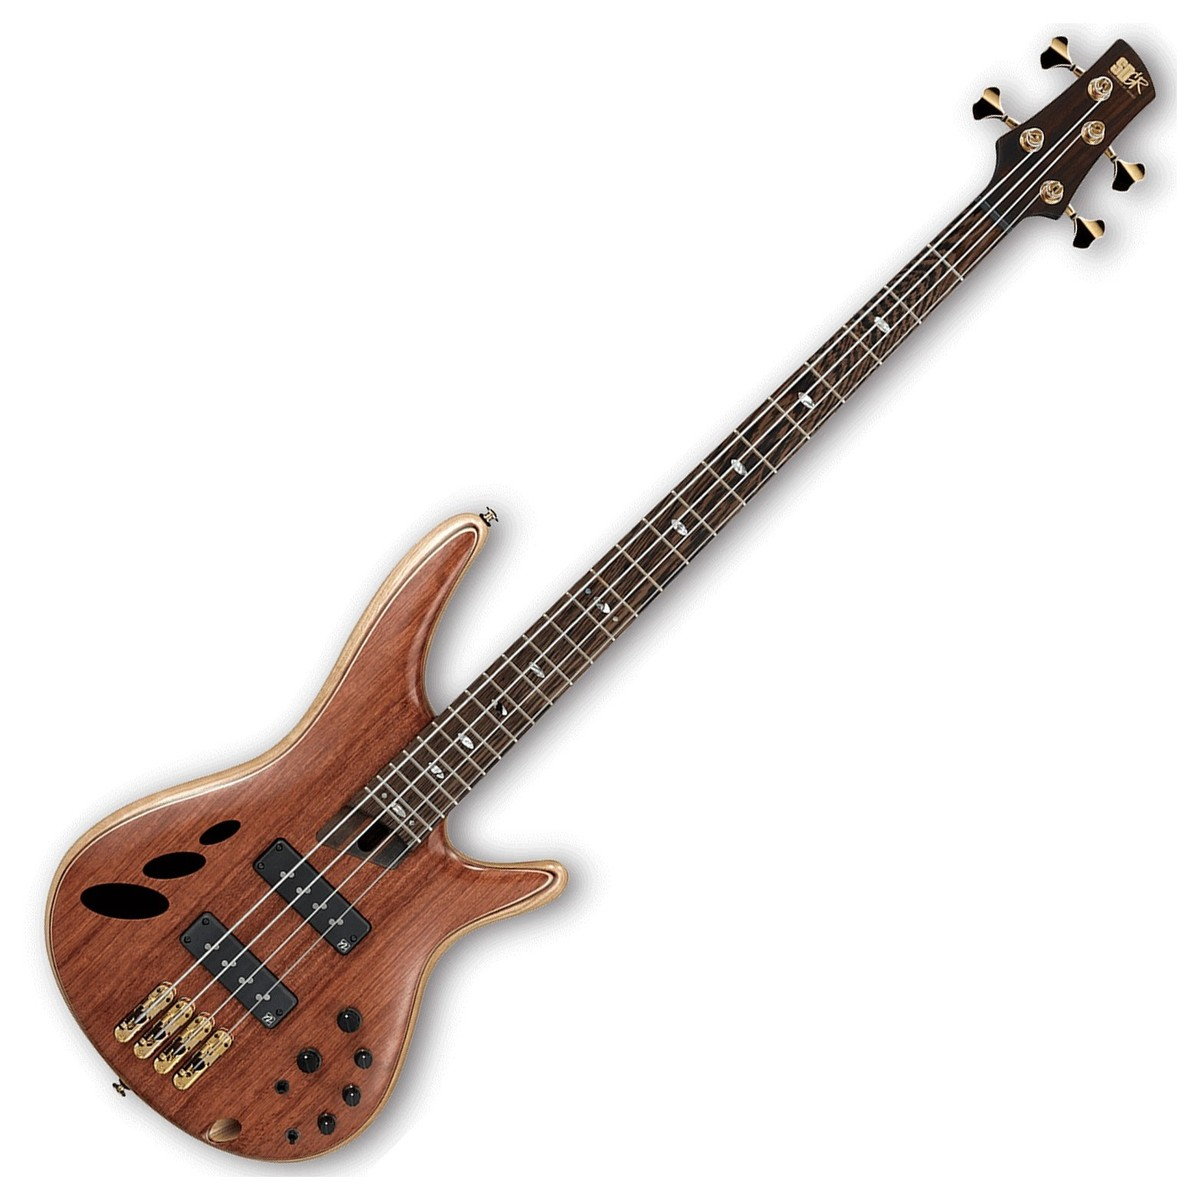 Dating ibanez bass